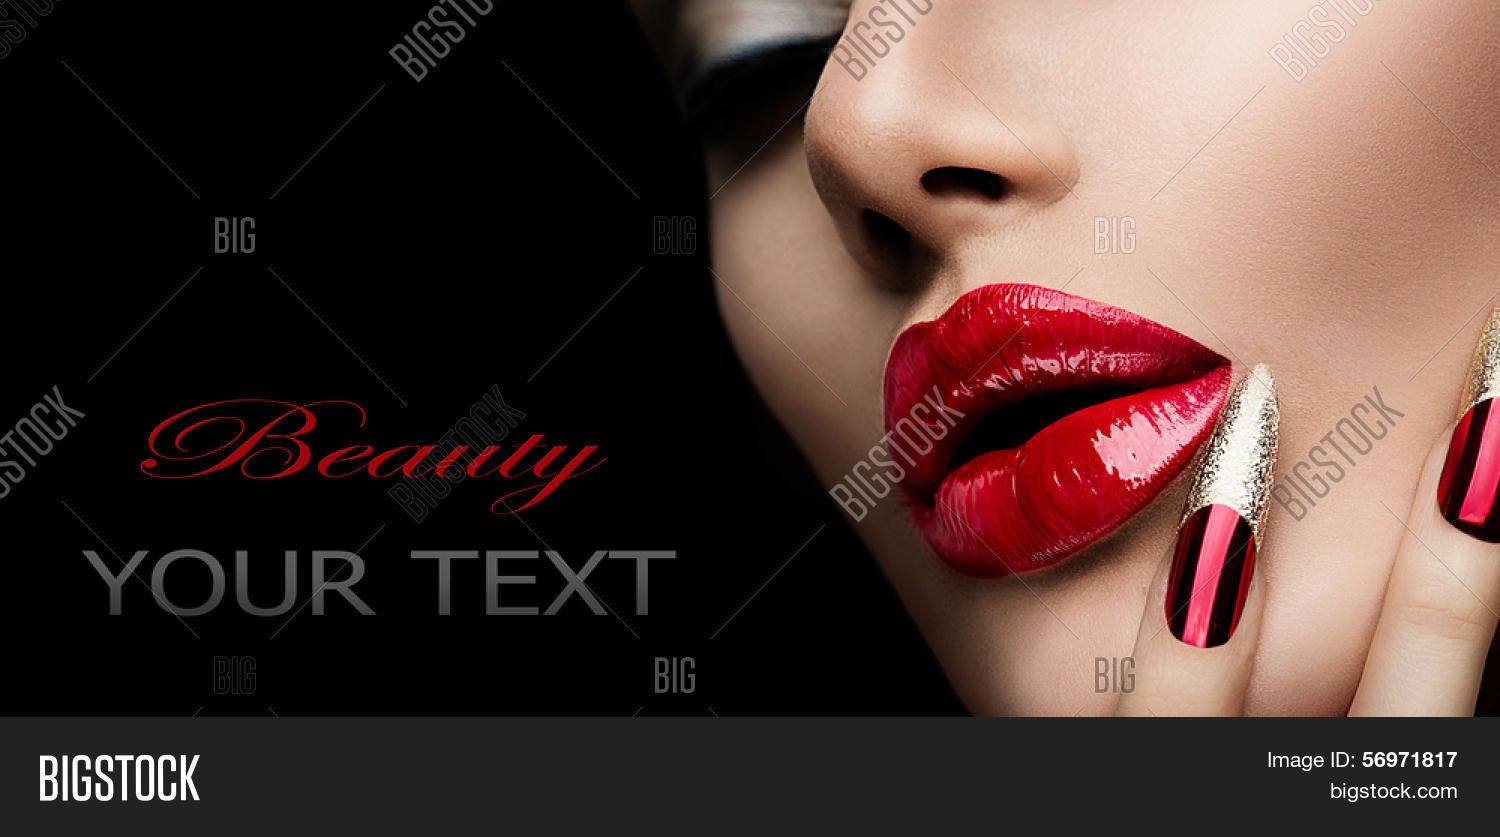 Beauty Concept. Image & Photo (Free Trial) | Bigstock